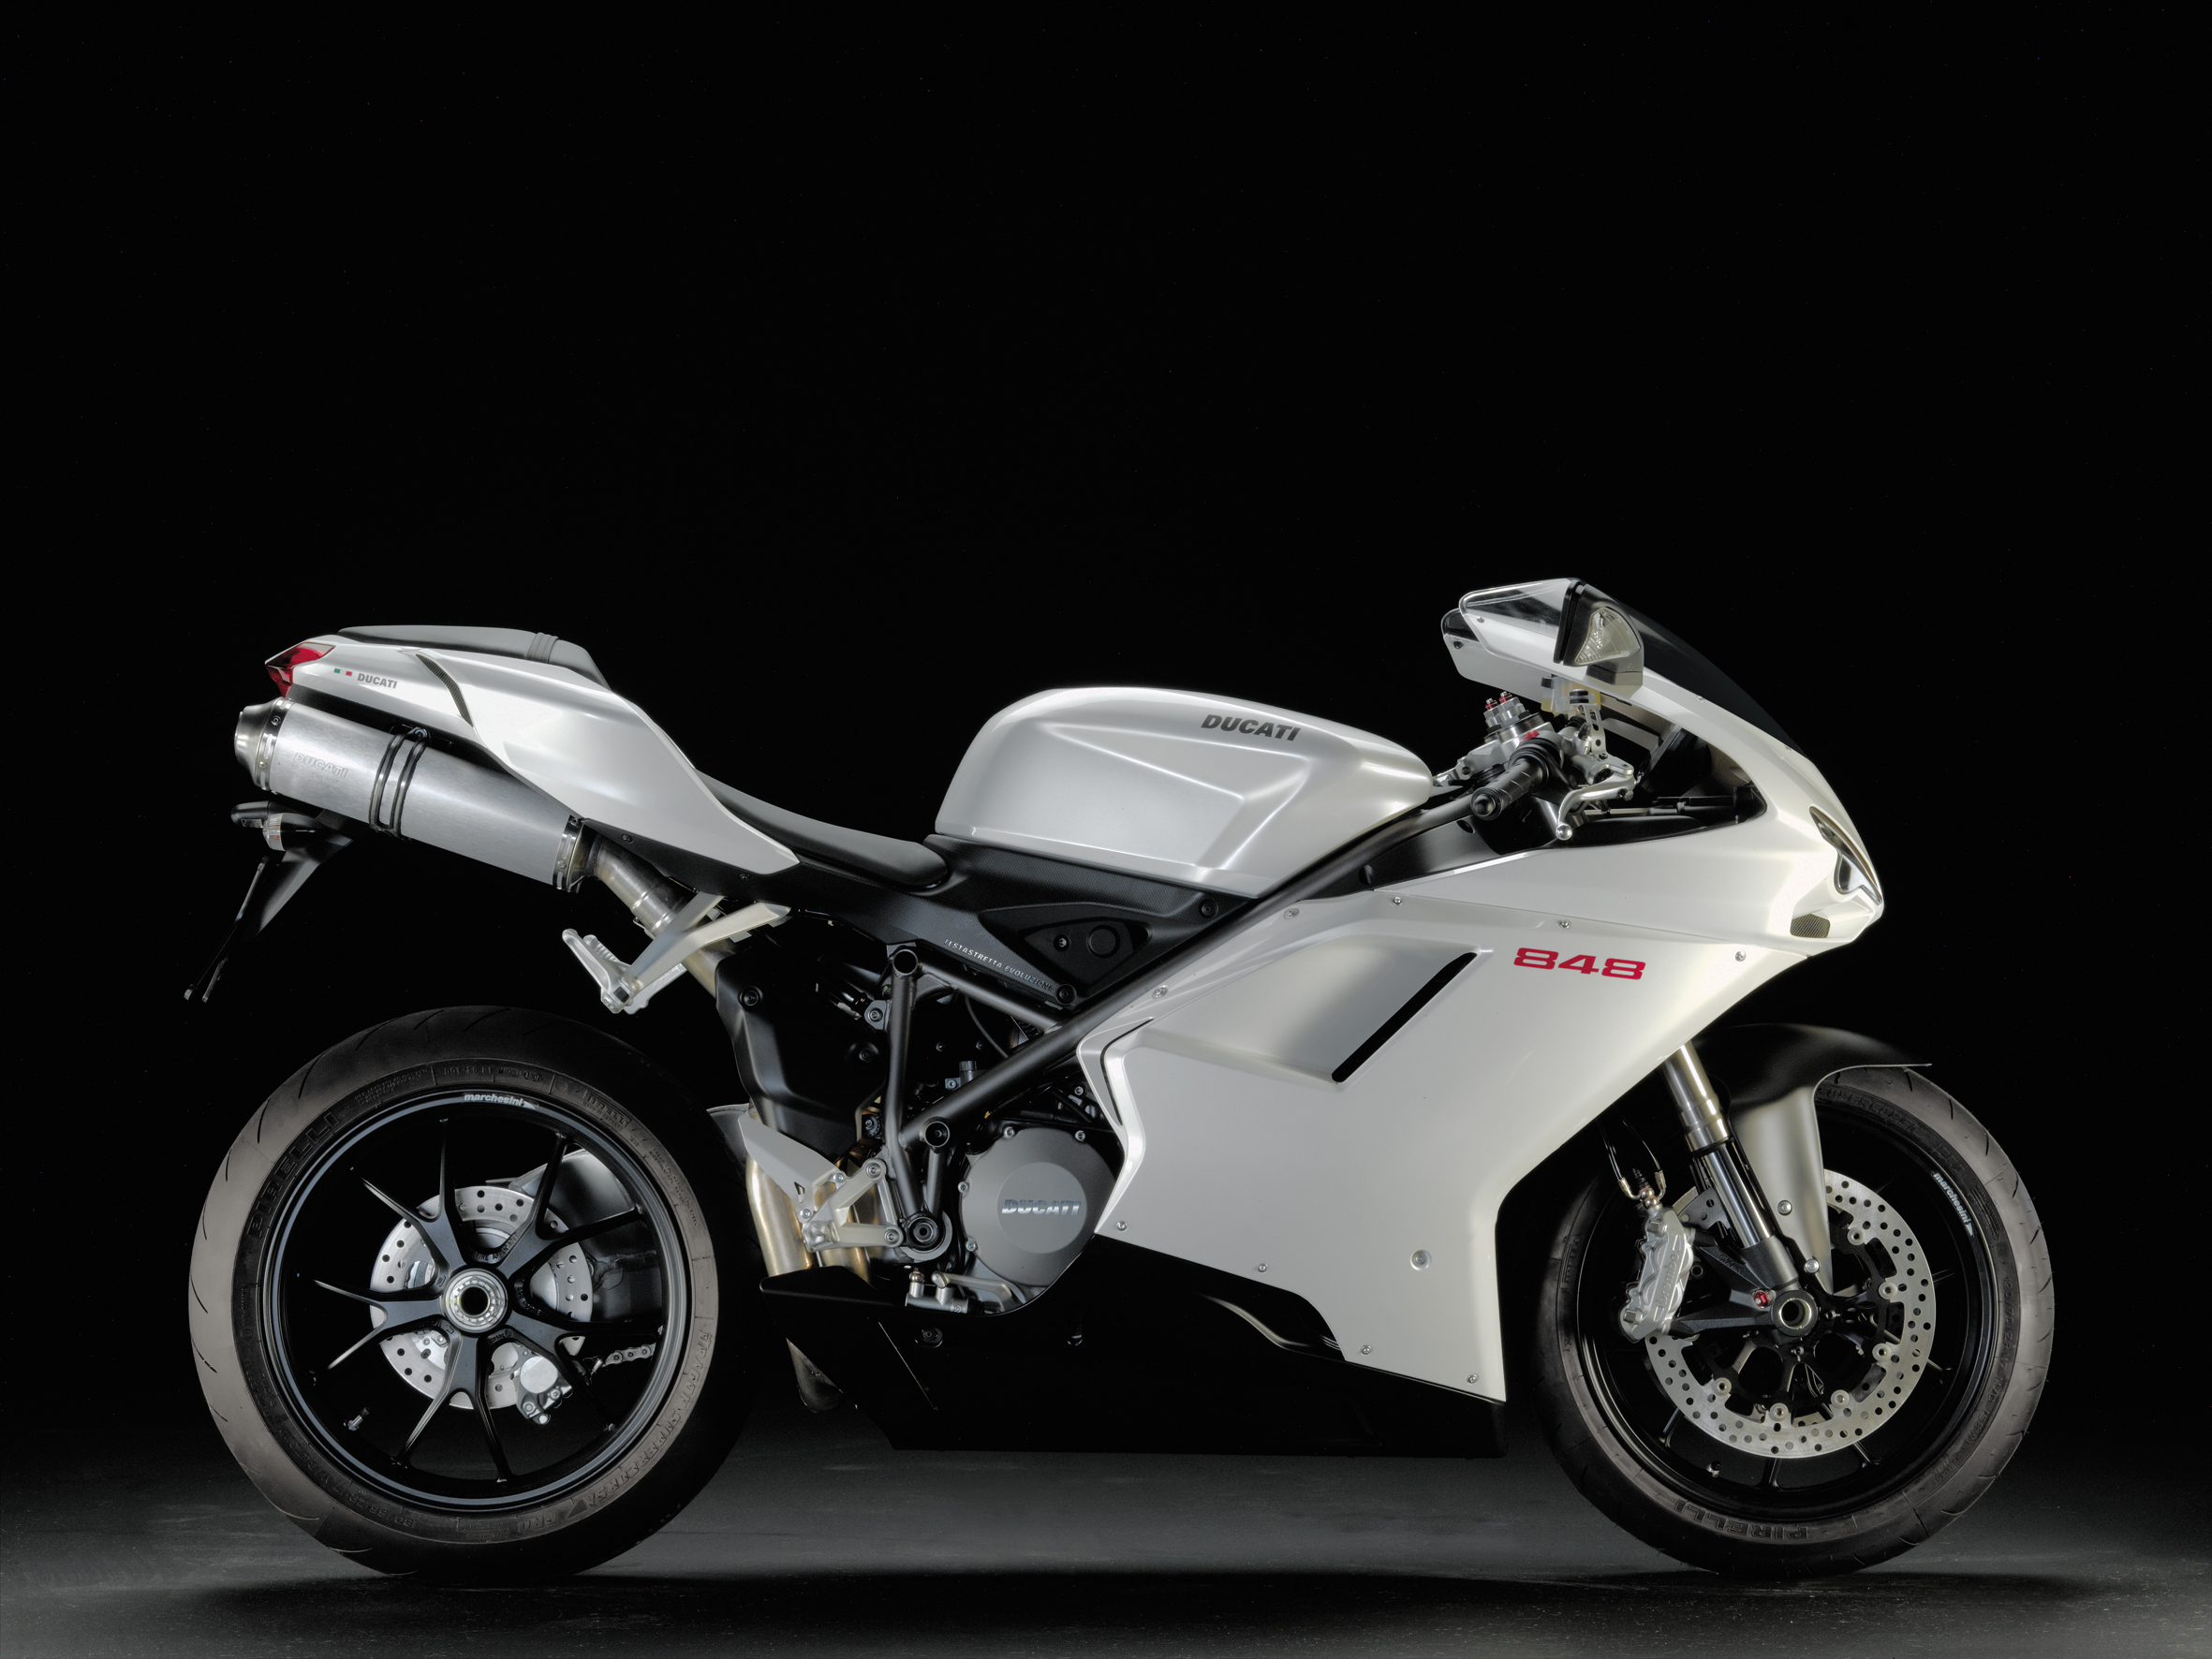 The Cullen Cars Images Jasper S Ducati Hd Wallpaper And Background